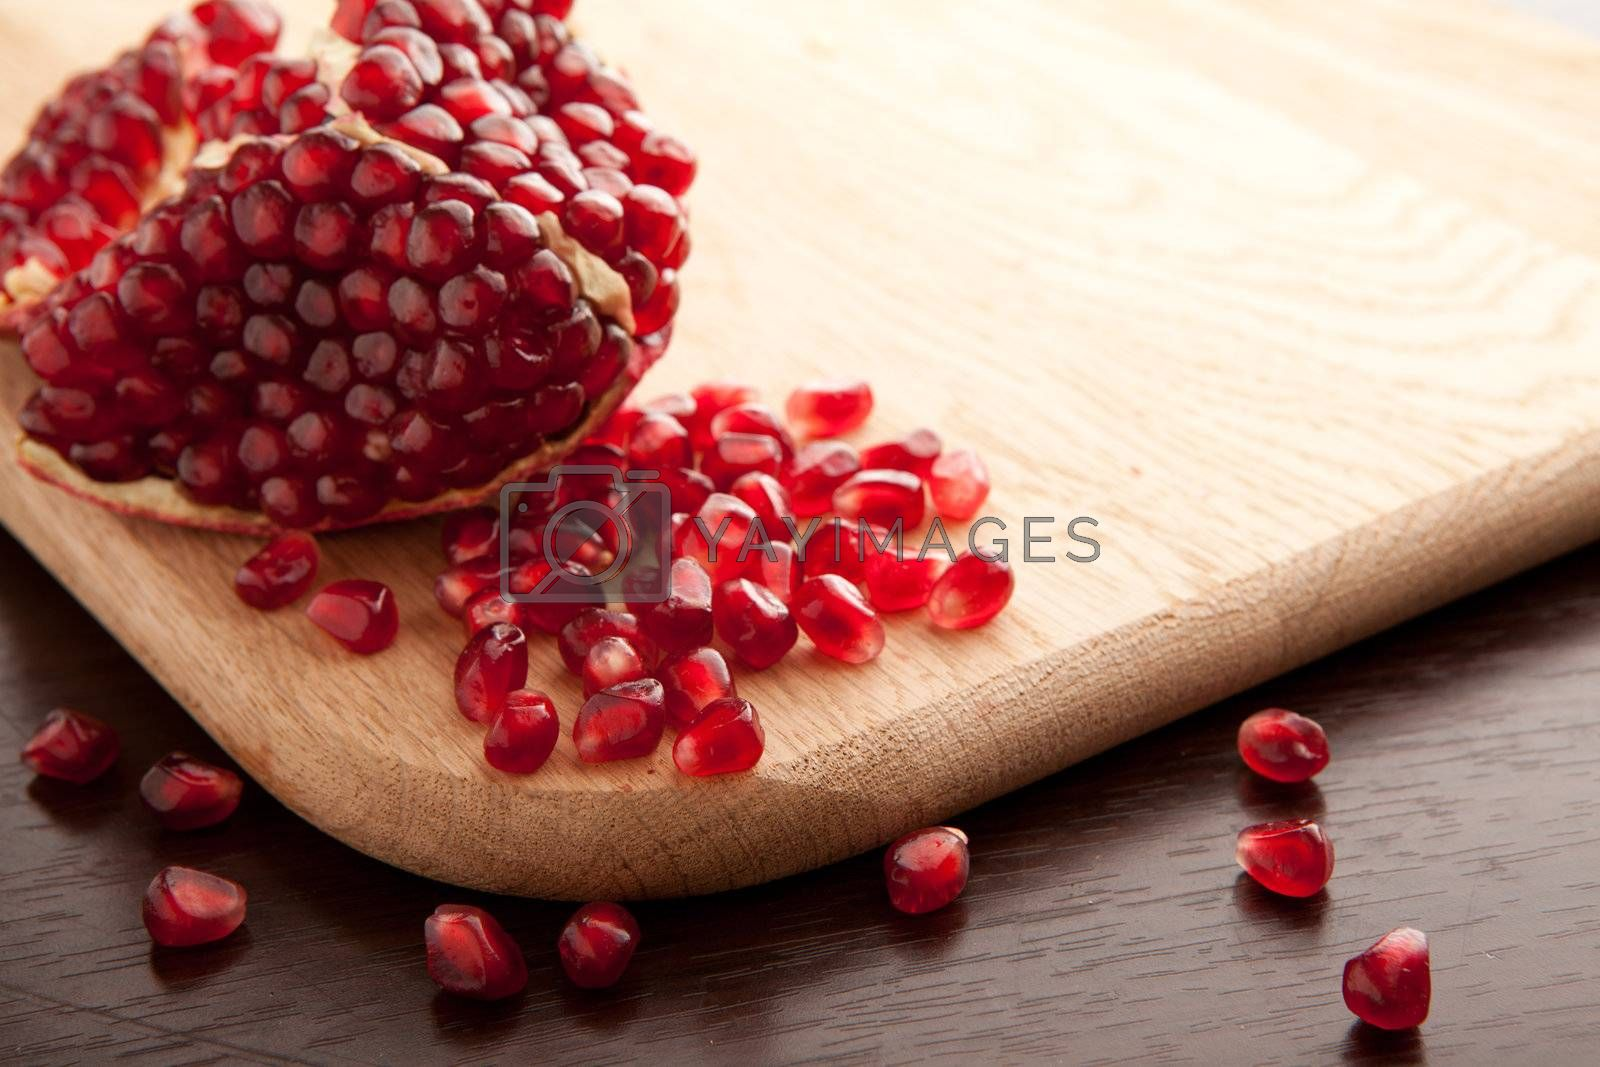 Pomegranate slices and handful of seeds on wooden background with empty place for text